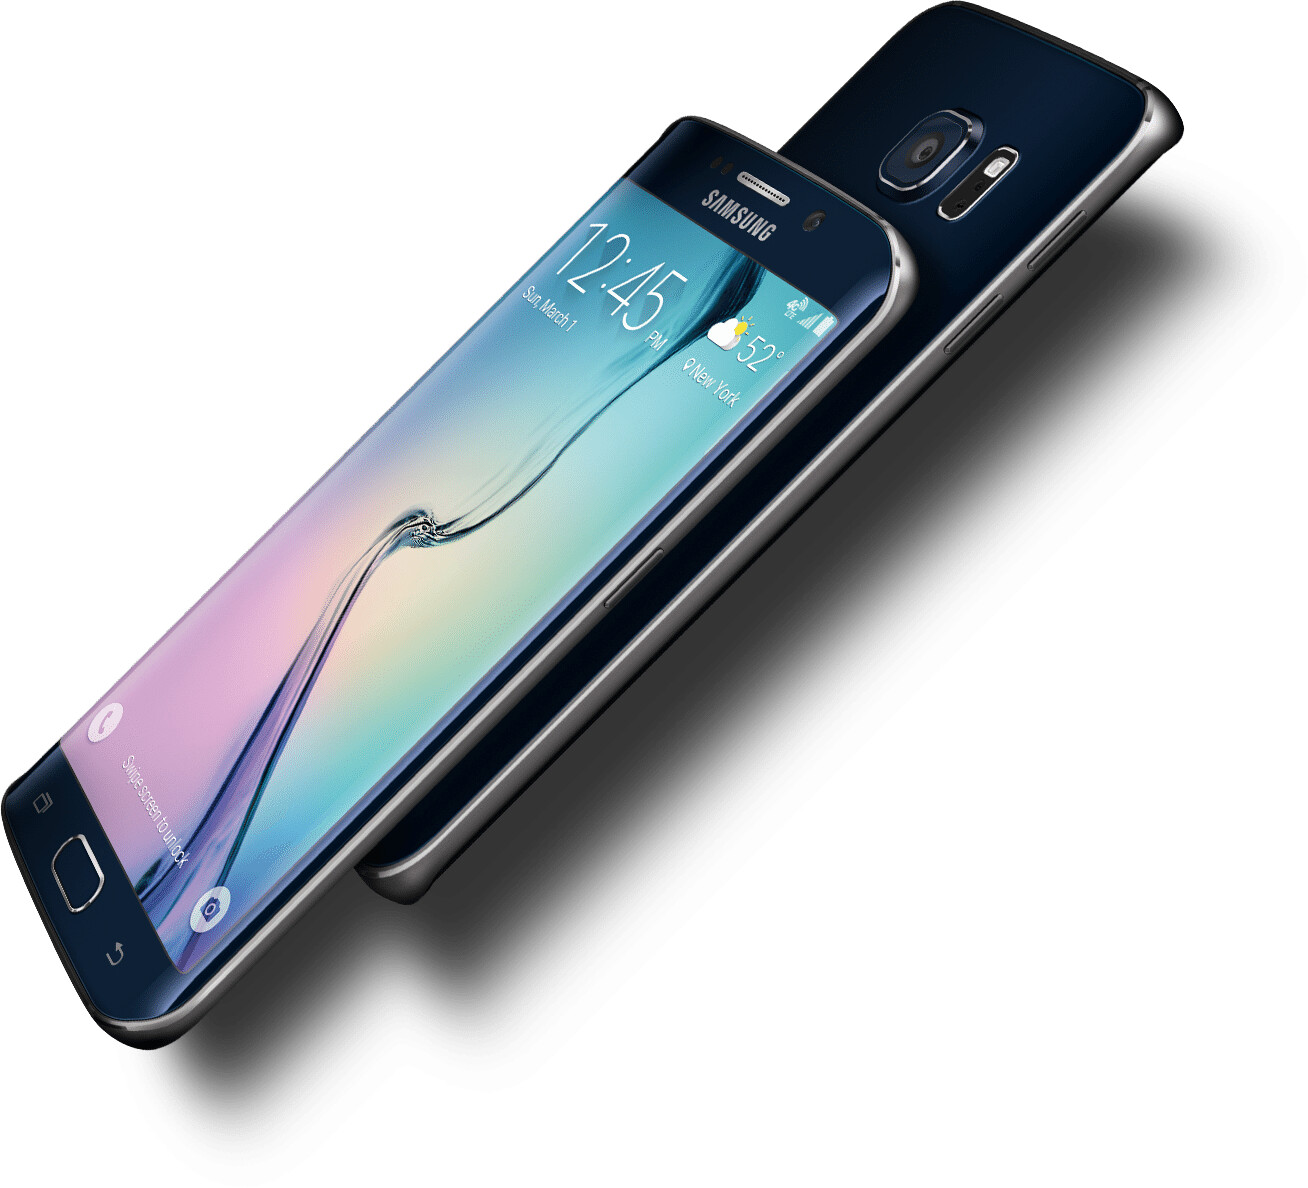 samsung 39 s galaxy s6 active may come with a microsd card slot but at a high cost. Black Bedroom Furniture Sets. Home Design Ideas